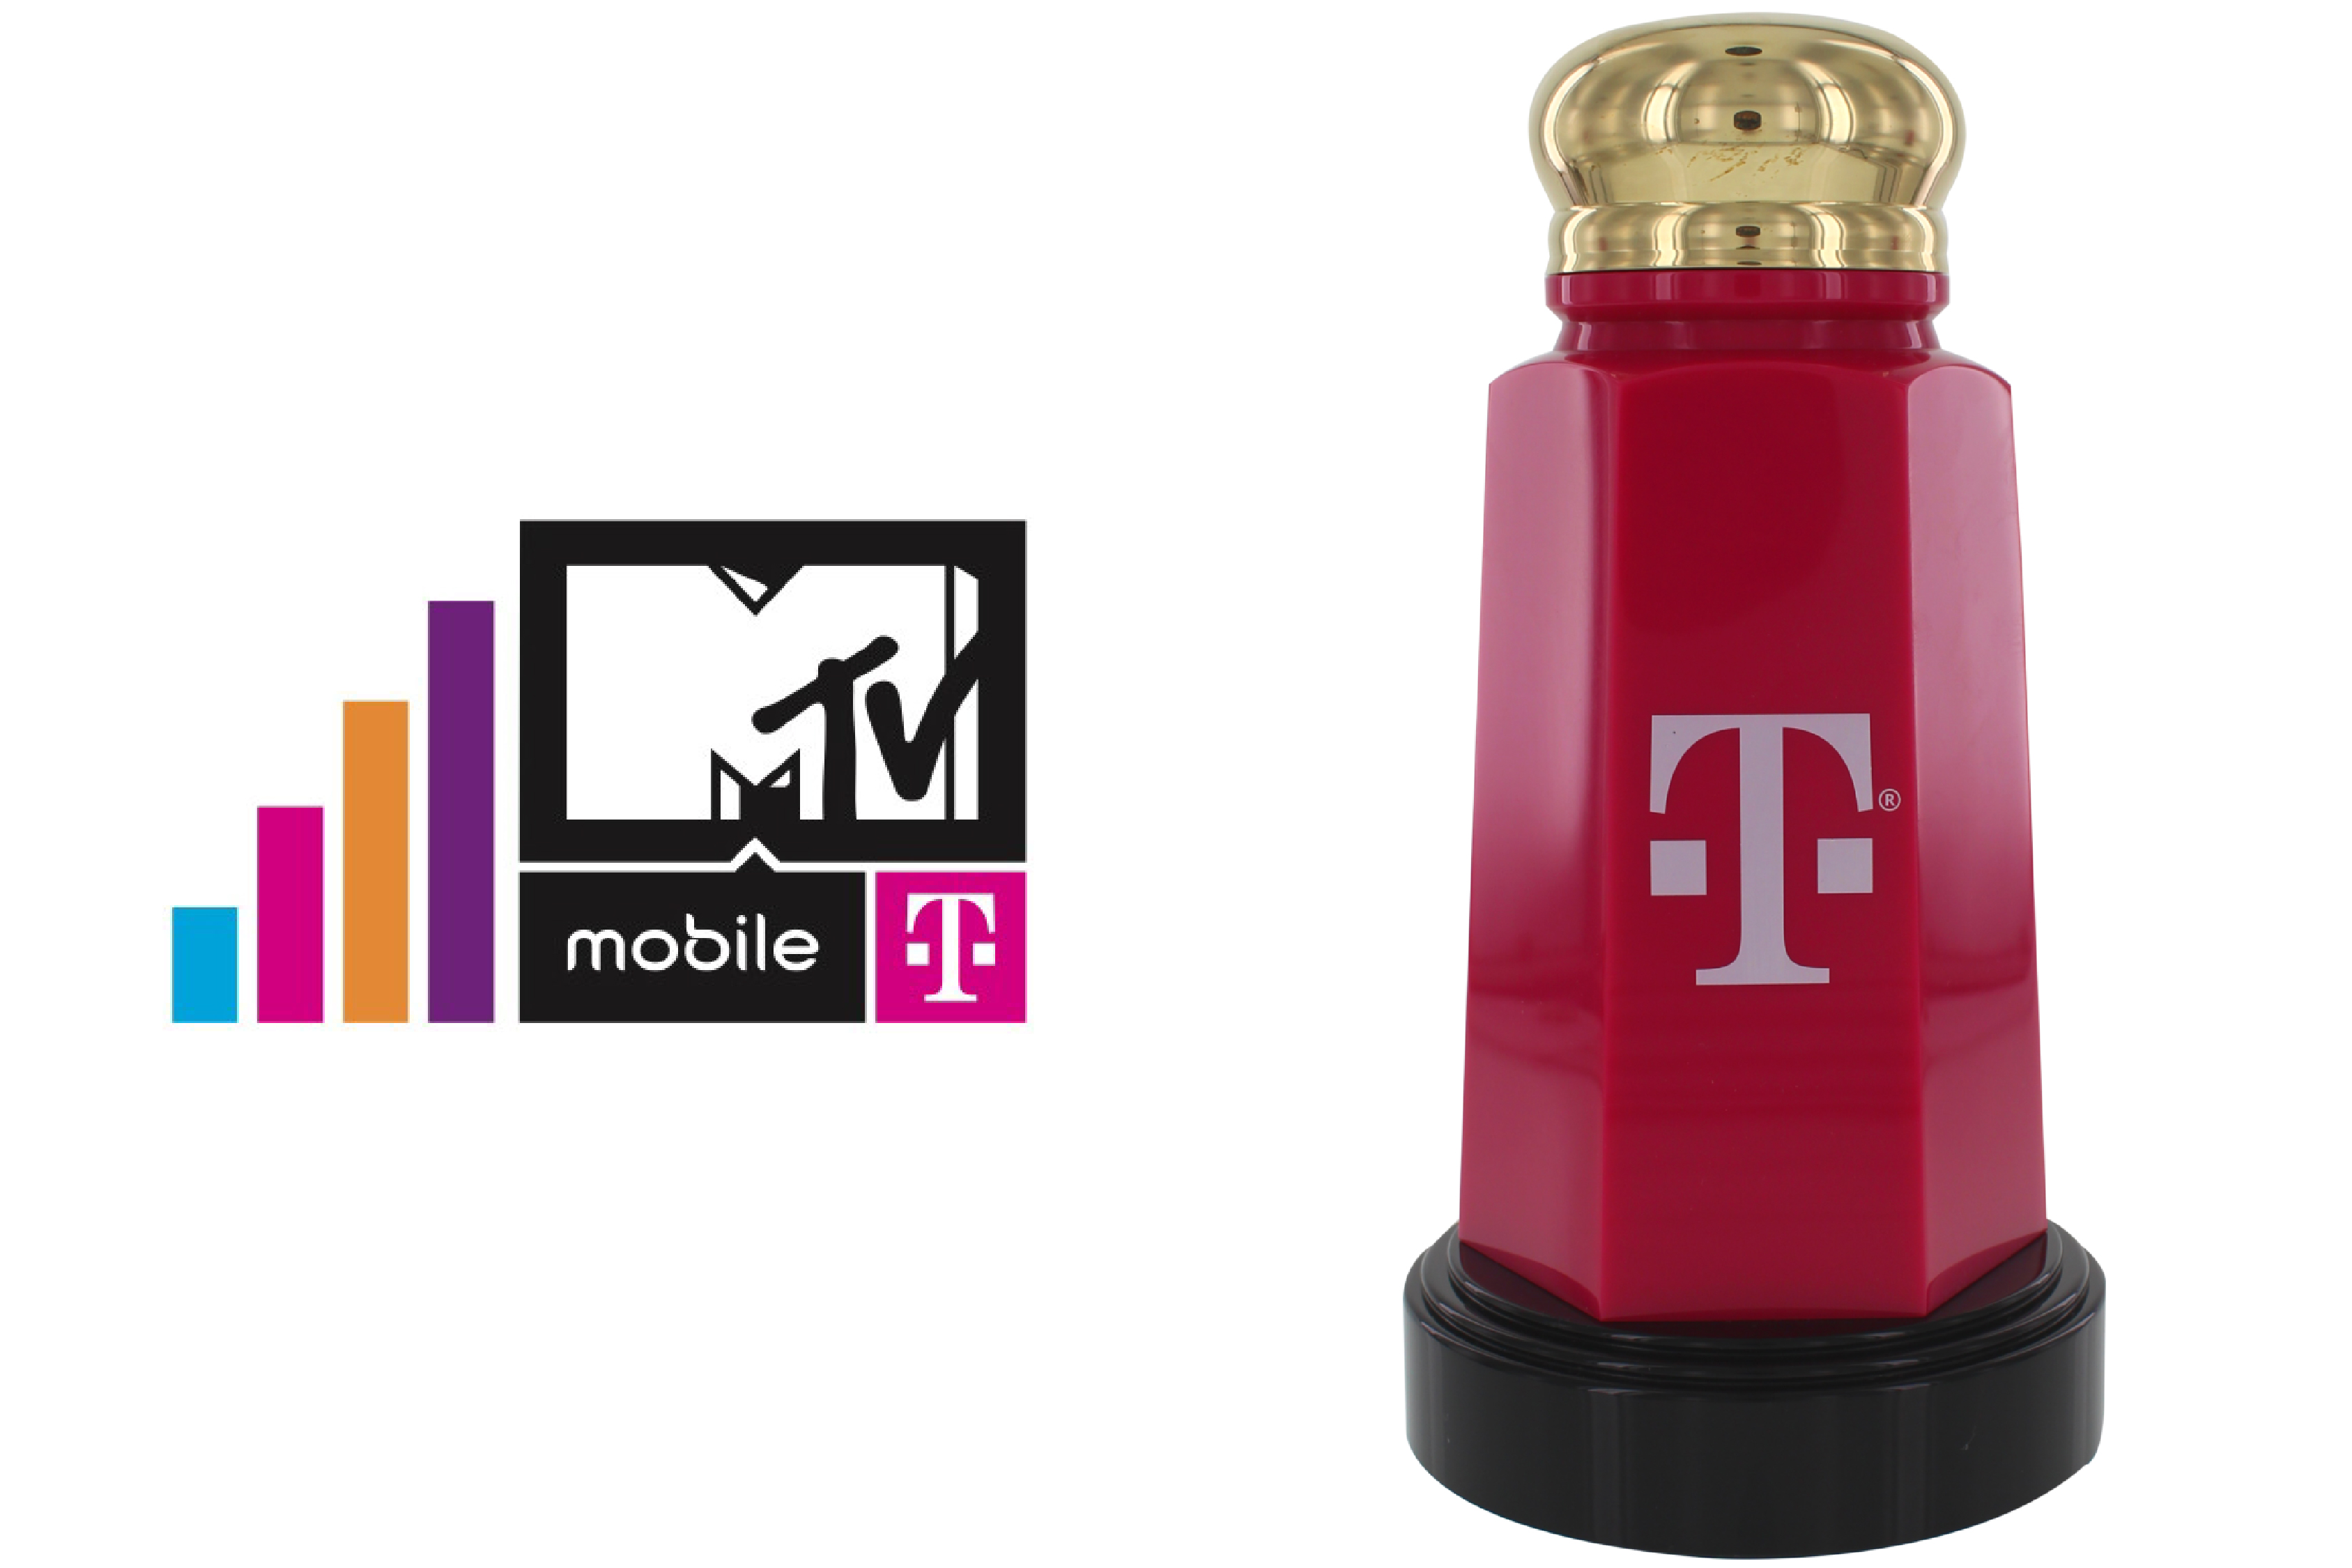 T-Mobile Golden Salt Award for the Best Break-up presented at the MTV Movie Awards